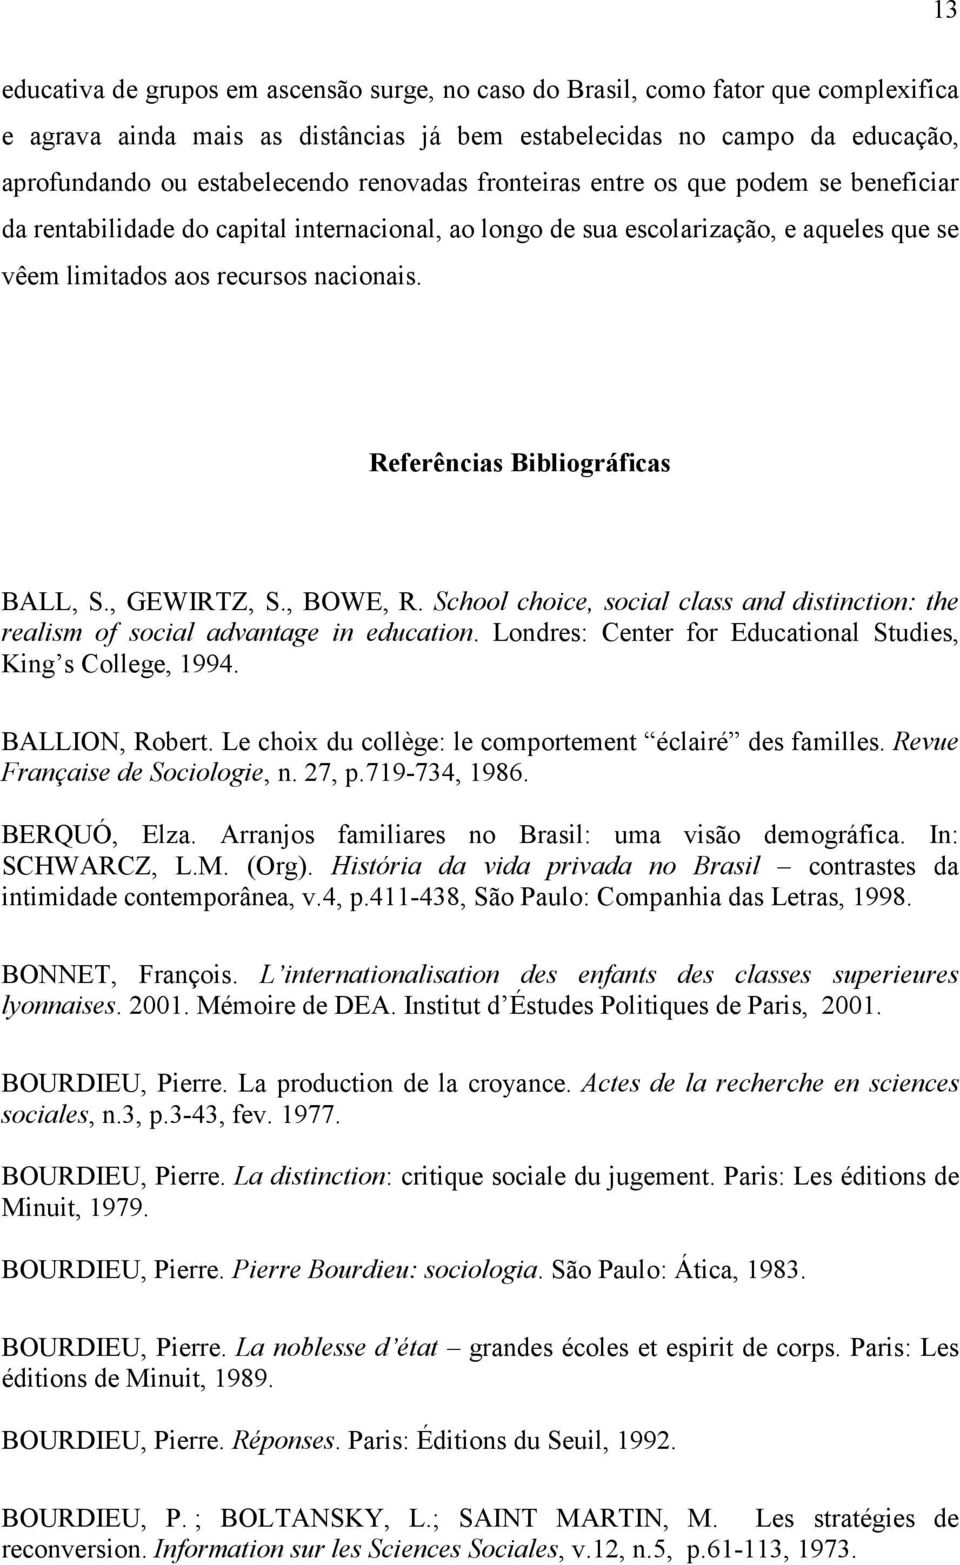 Referências Bibliográficas BALL, S., GEWIRTZ, S., BOWE, R. School choice, social class and distinction: the realism of social advantage in education.